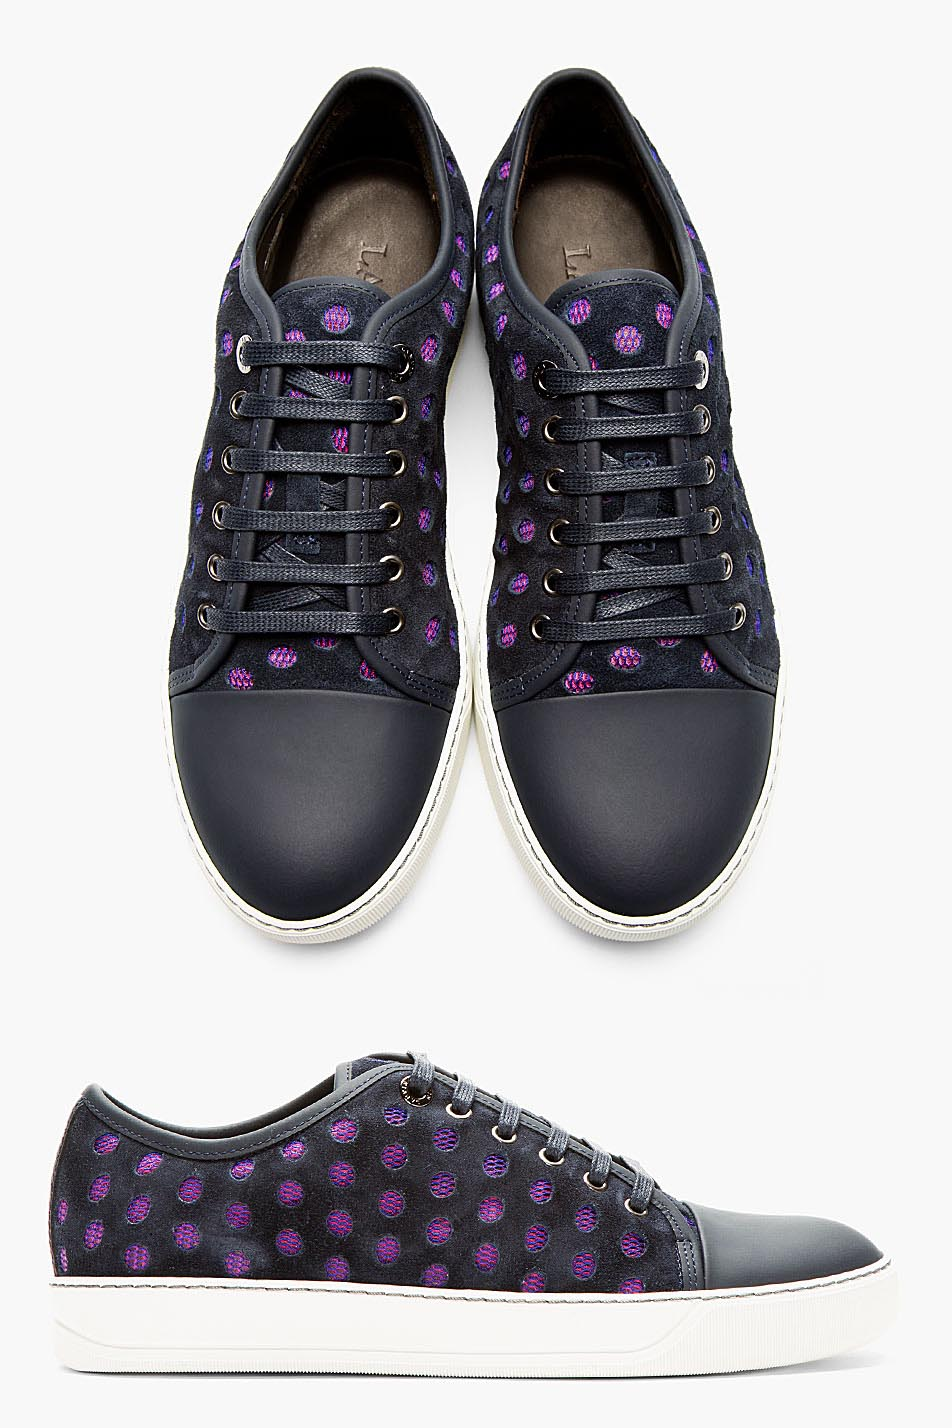 Laser Cut Suede in Deep Navy LANVIN Sneakers